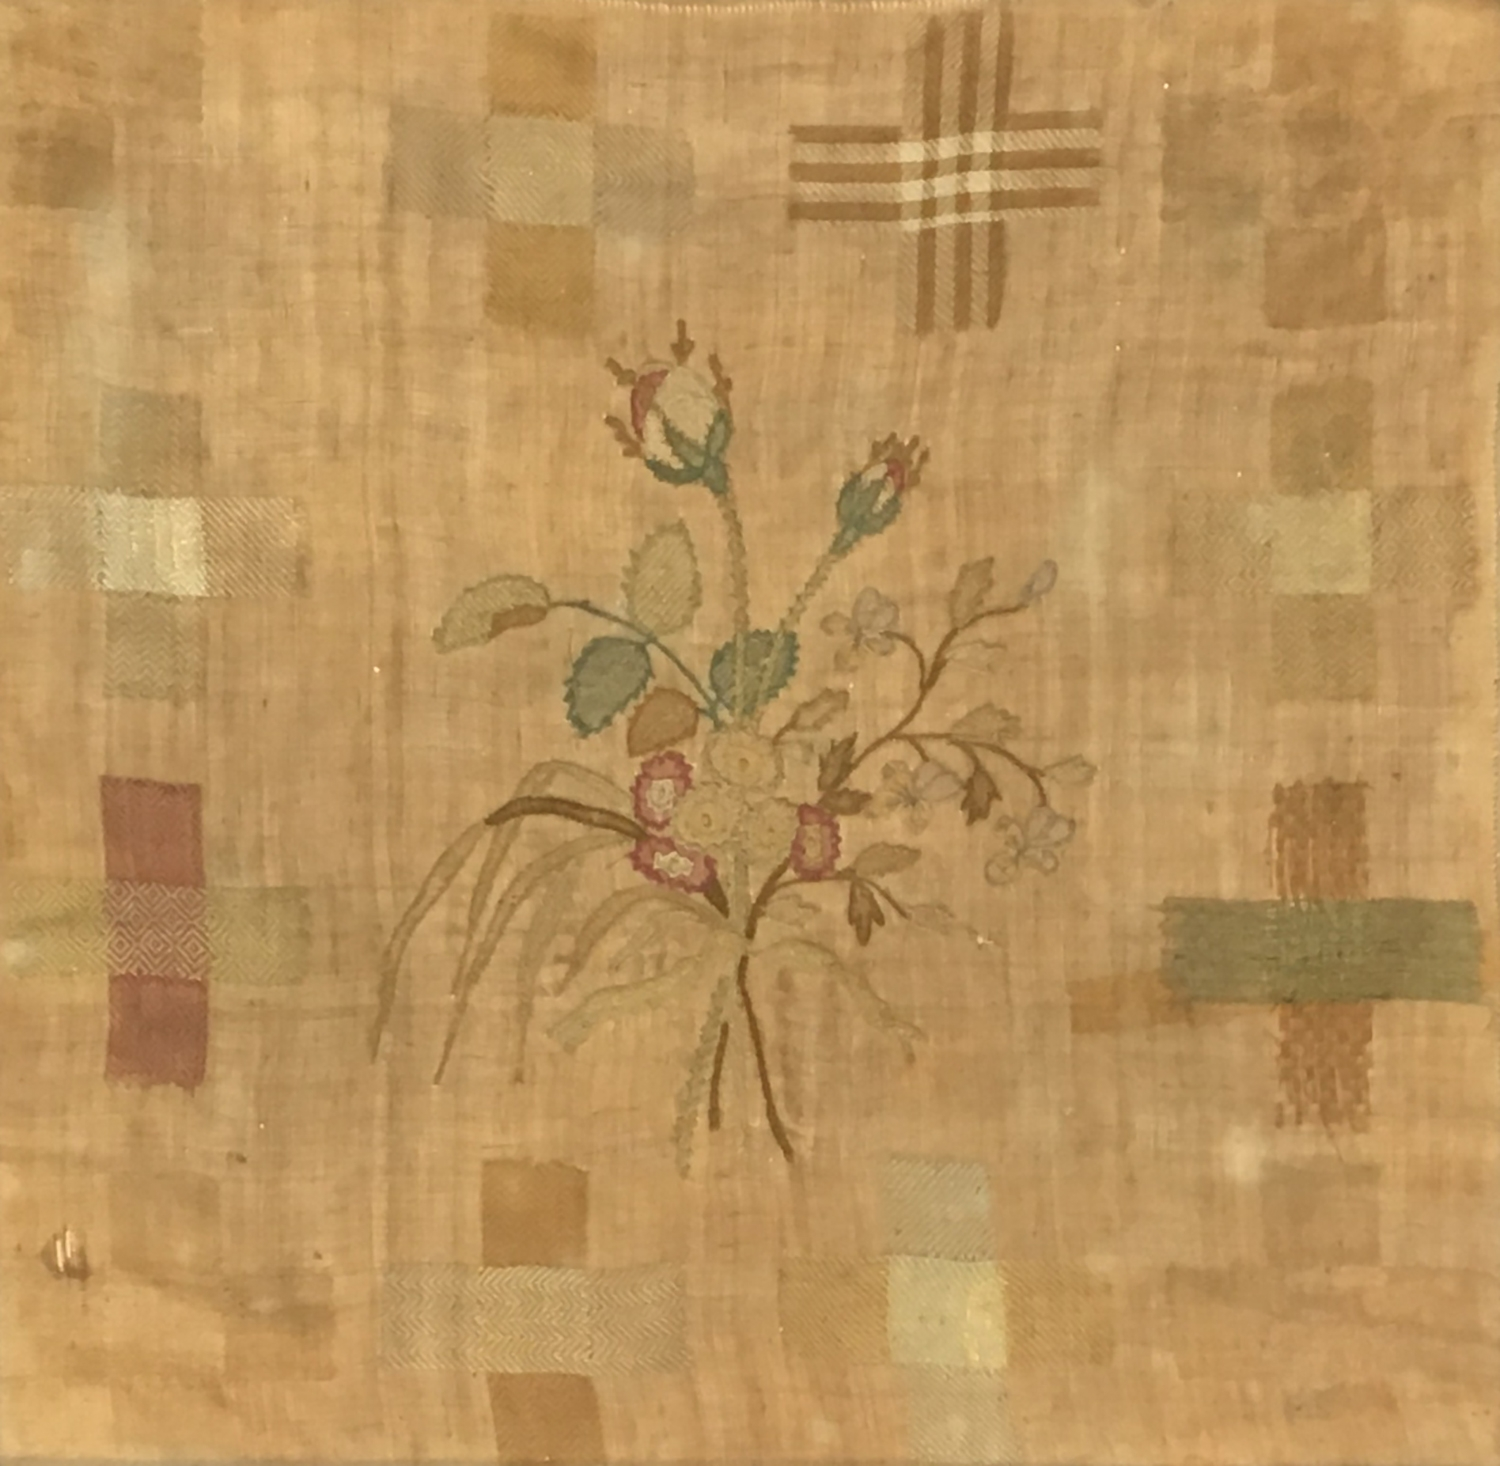 An 18th century needlework sampler depicting a stand of flowers, 33 x 34cm